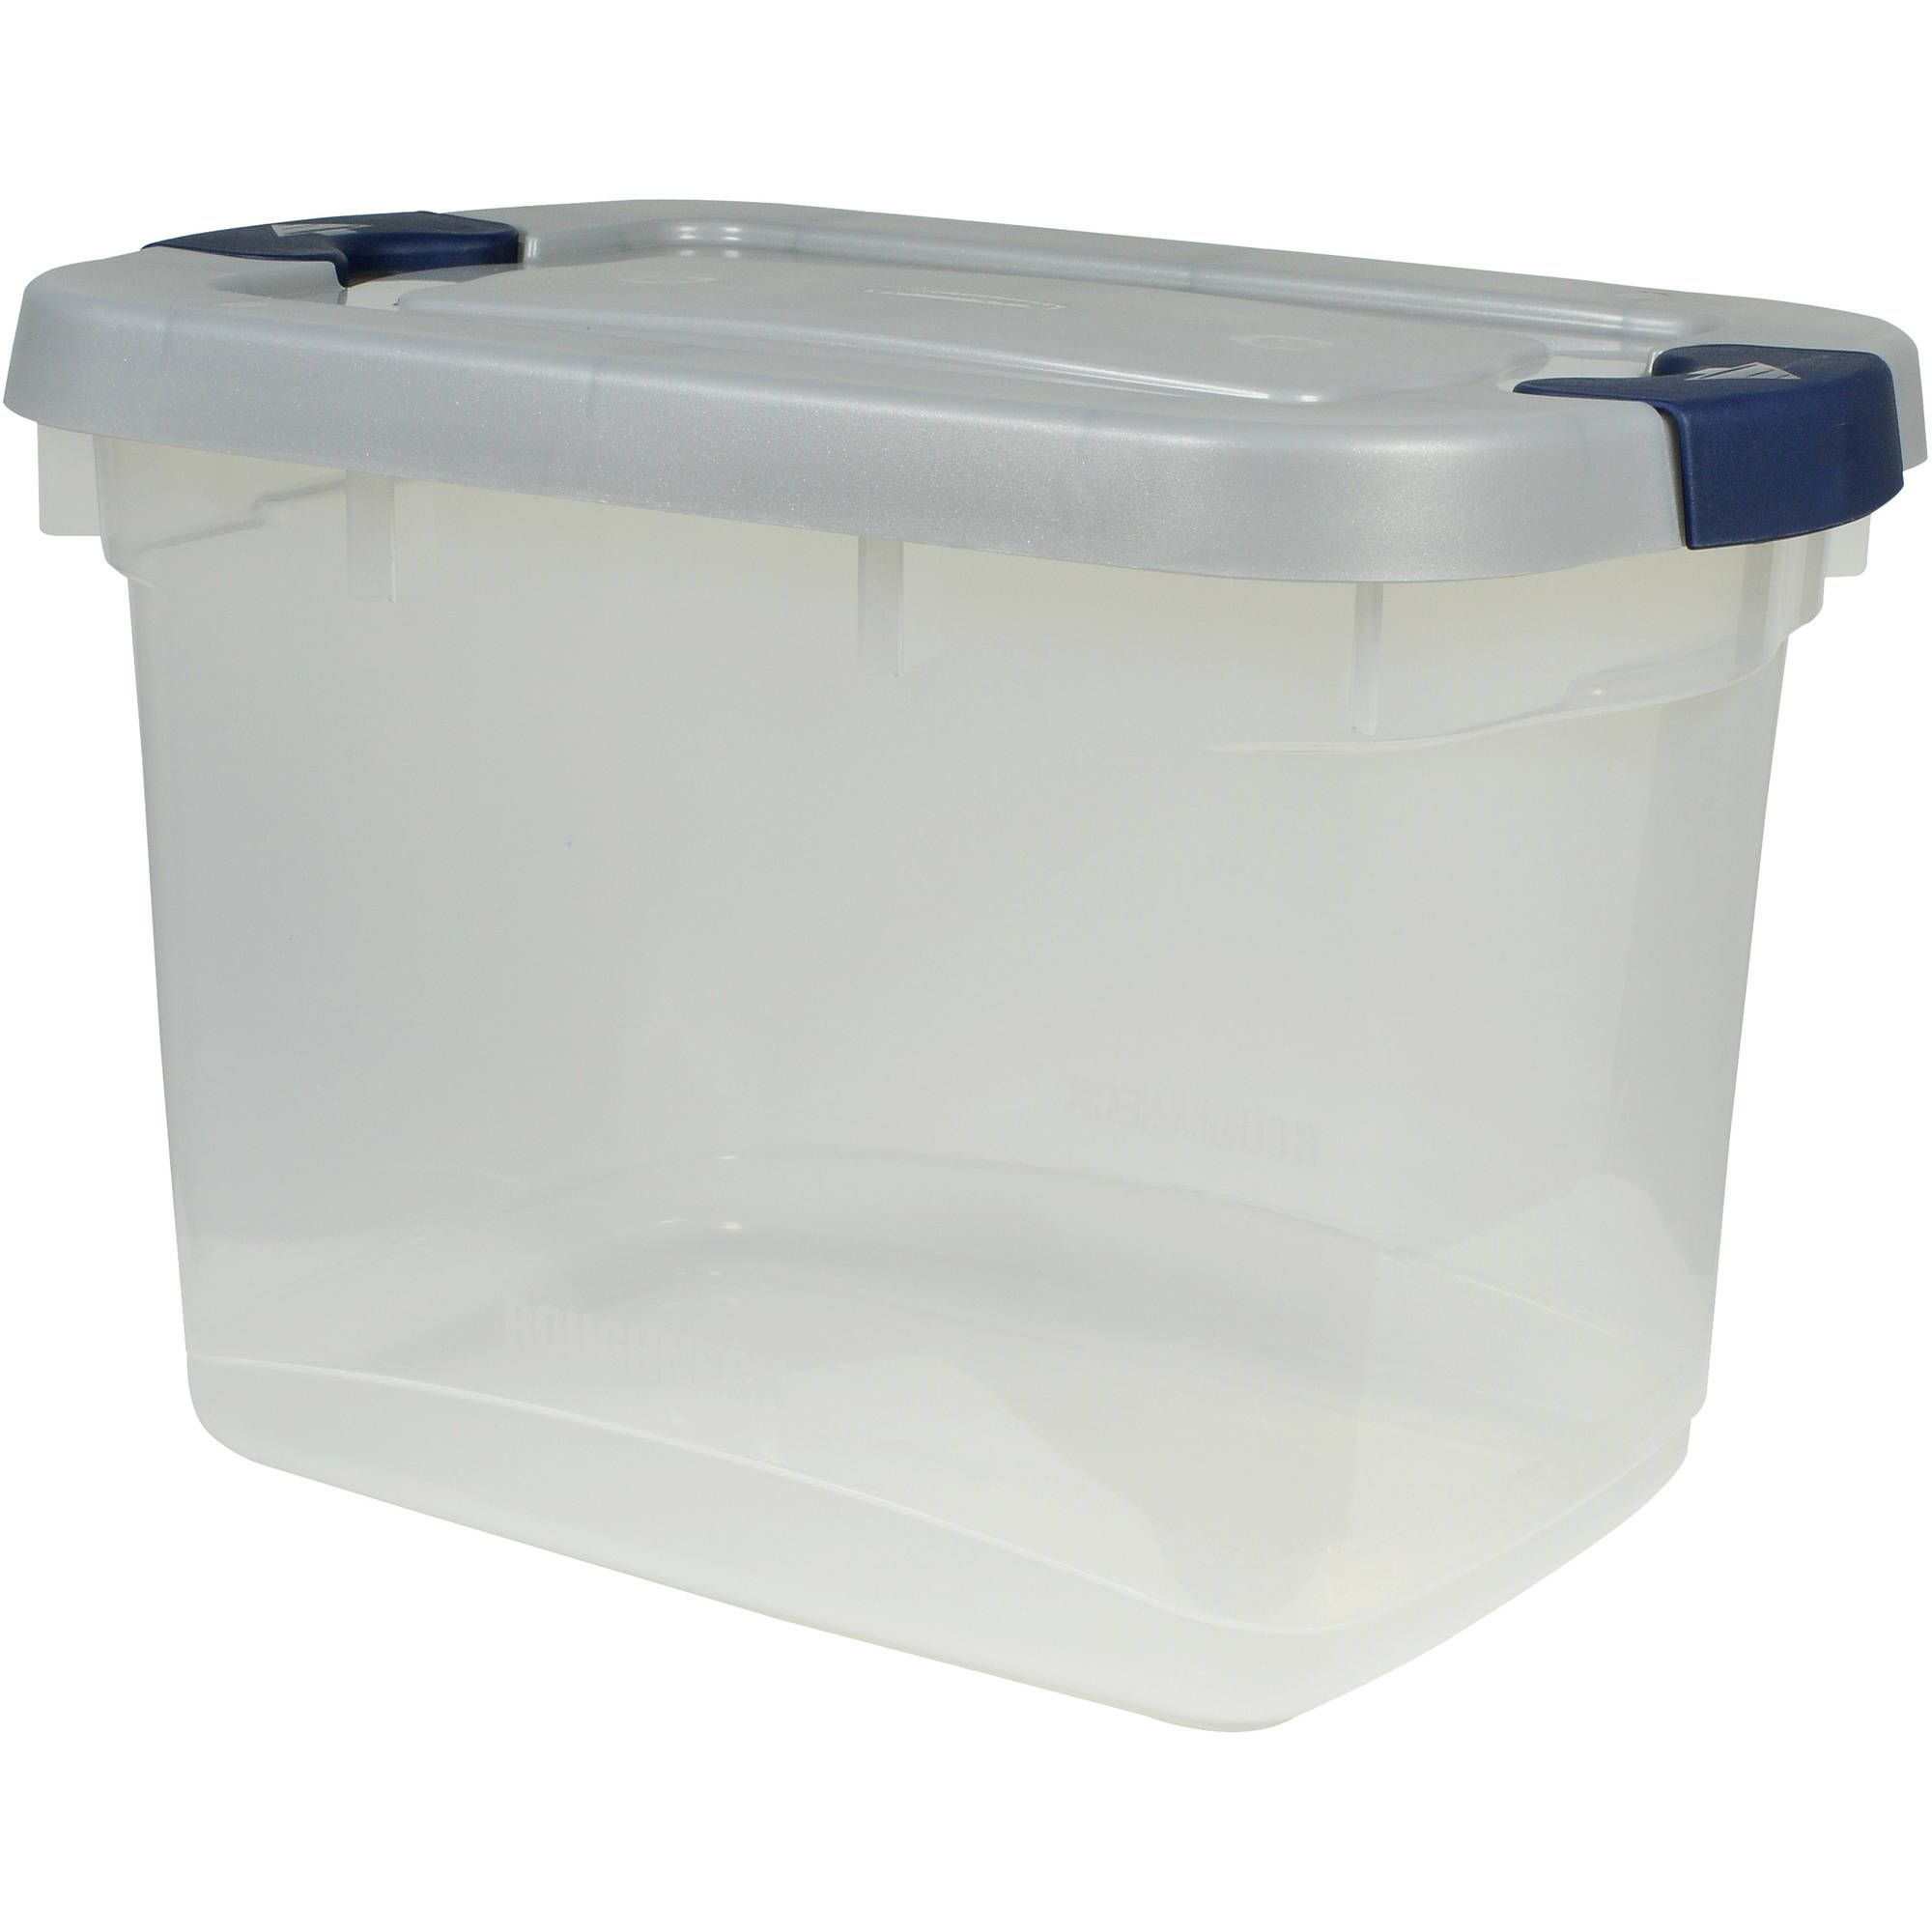 rubbermaid roughneck clear storage tote bins 19 qt gal with gray ebay. Black Bedroom Furniture Sets. Home Design Ideas